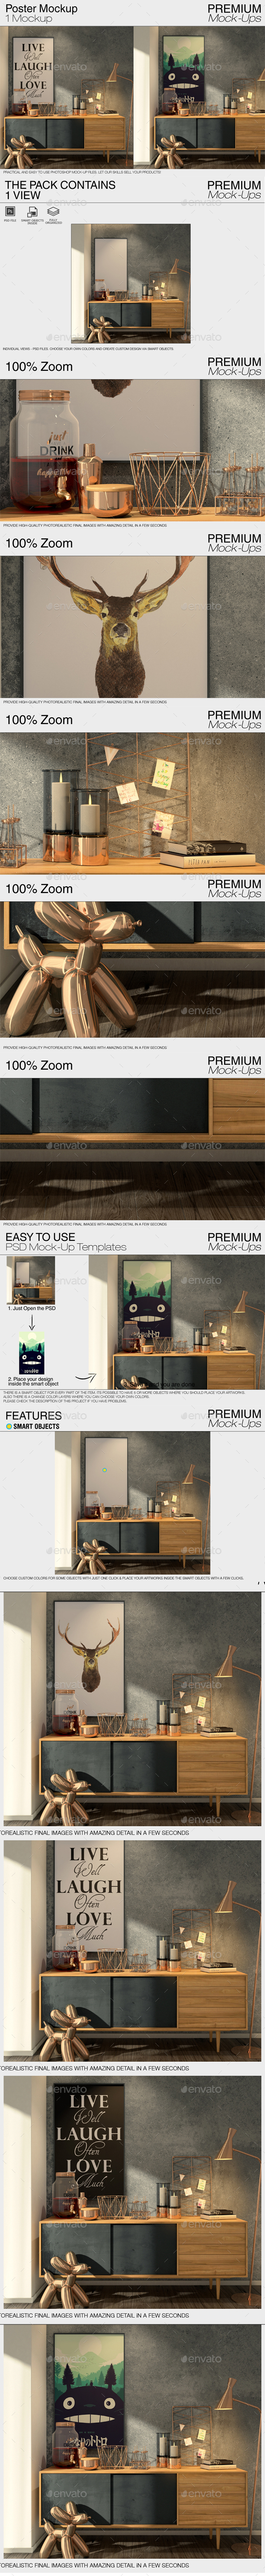 GraphicRiver Poster Mockup 20963584